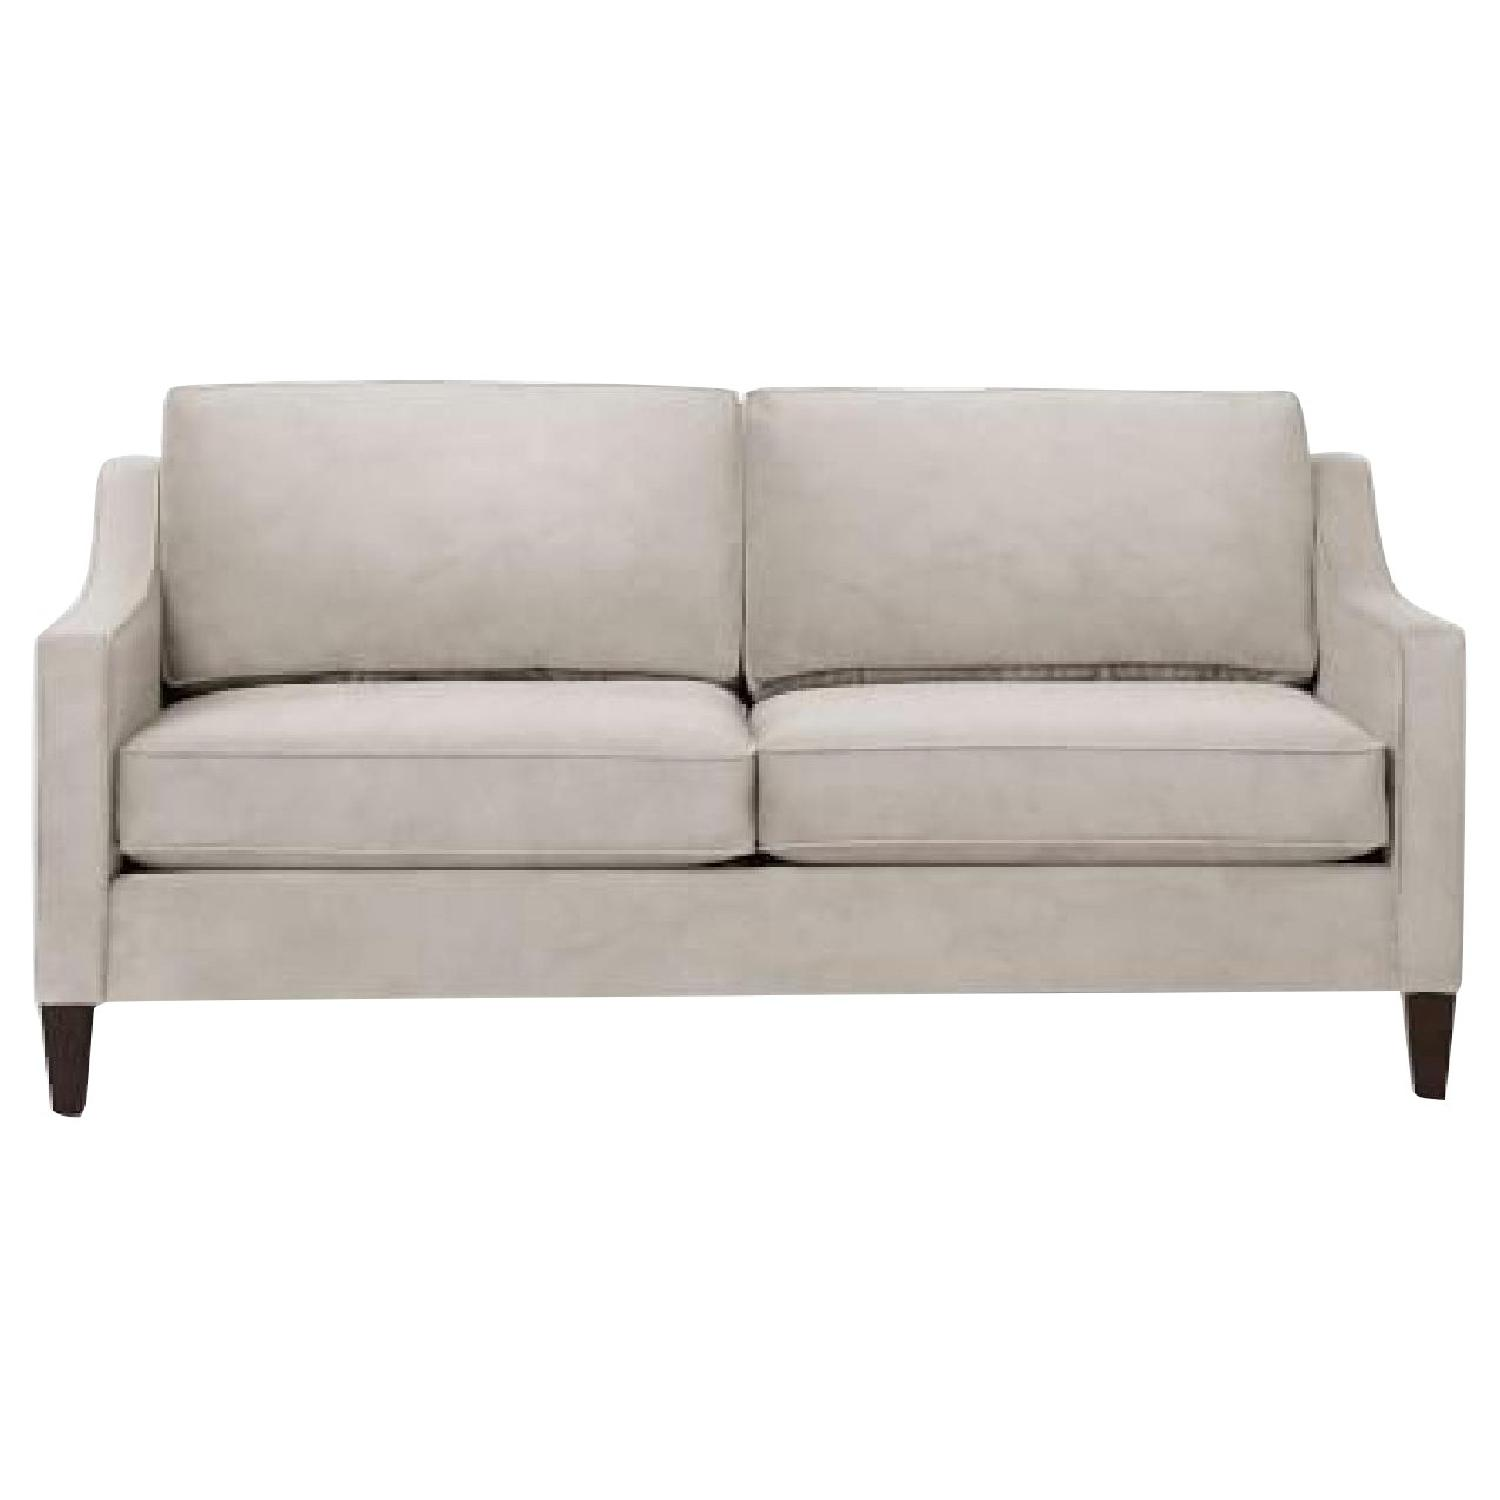 West Elm Paidge Sofa